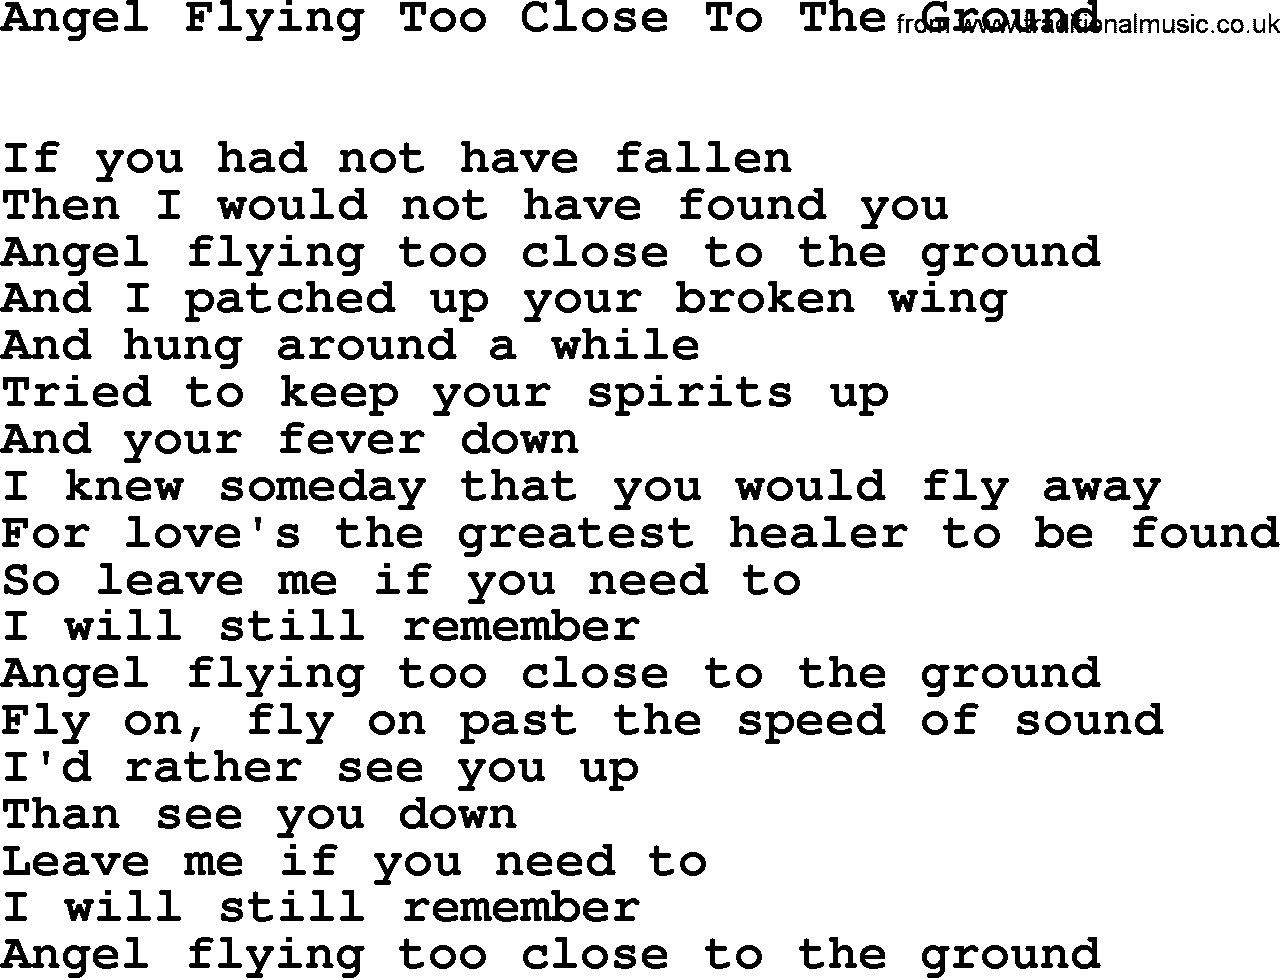 Willie Nelson - Angel Flying Too Close To The Ground Lyrics